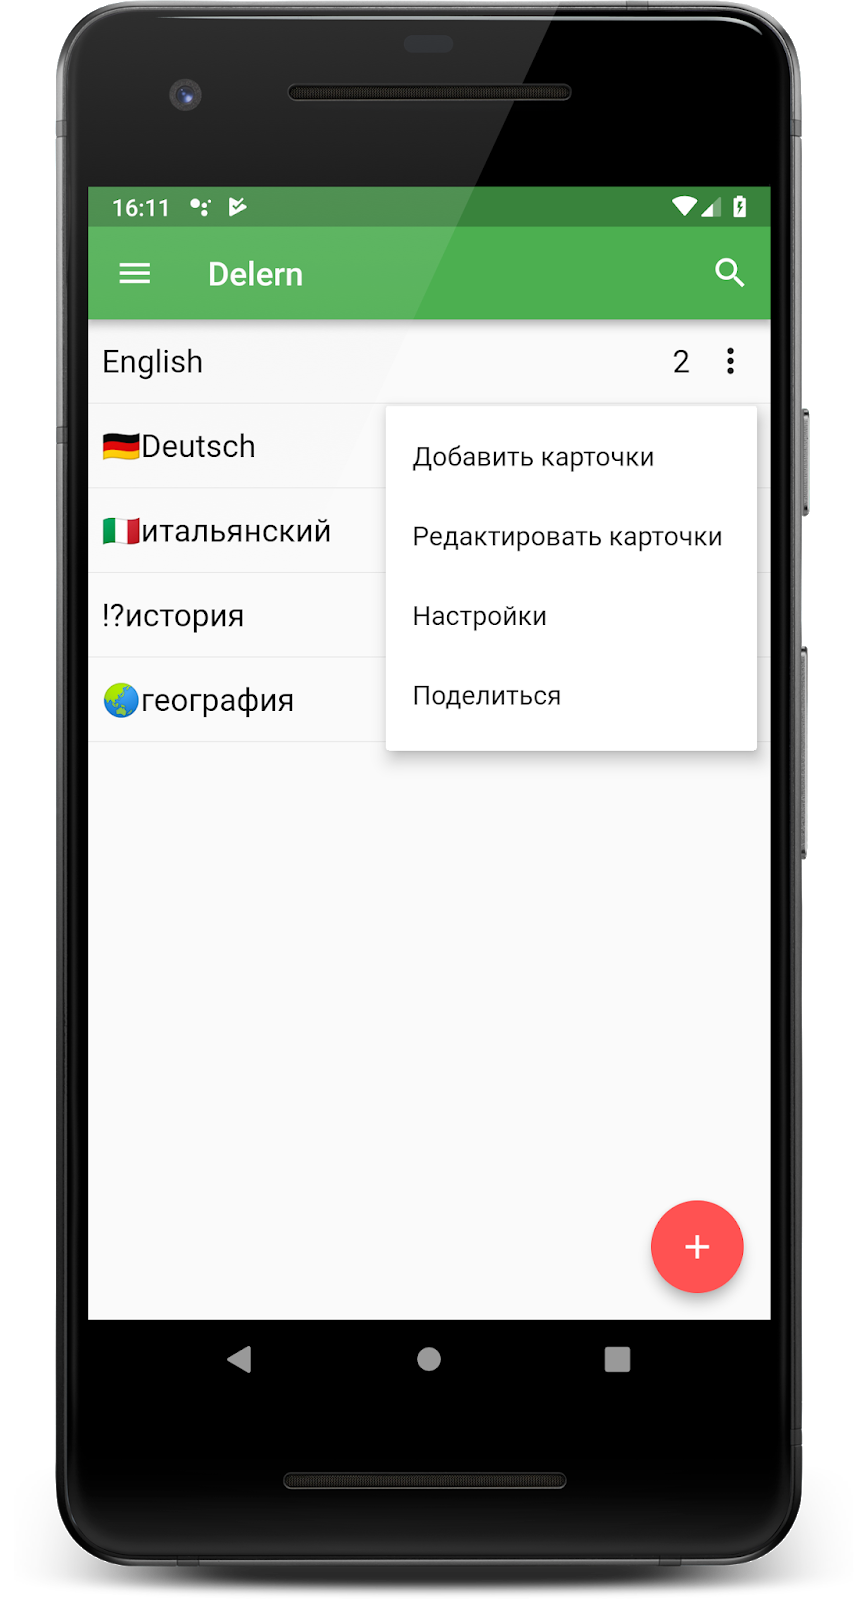 Delern Flashcards. Меню списков